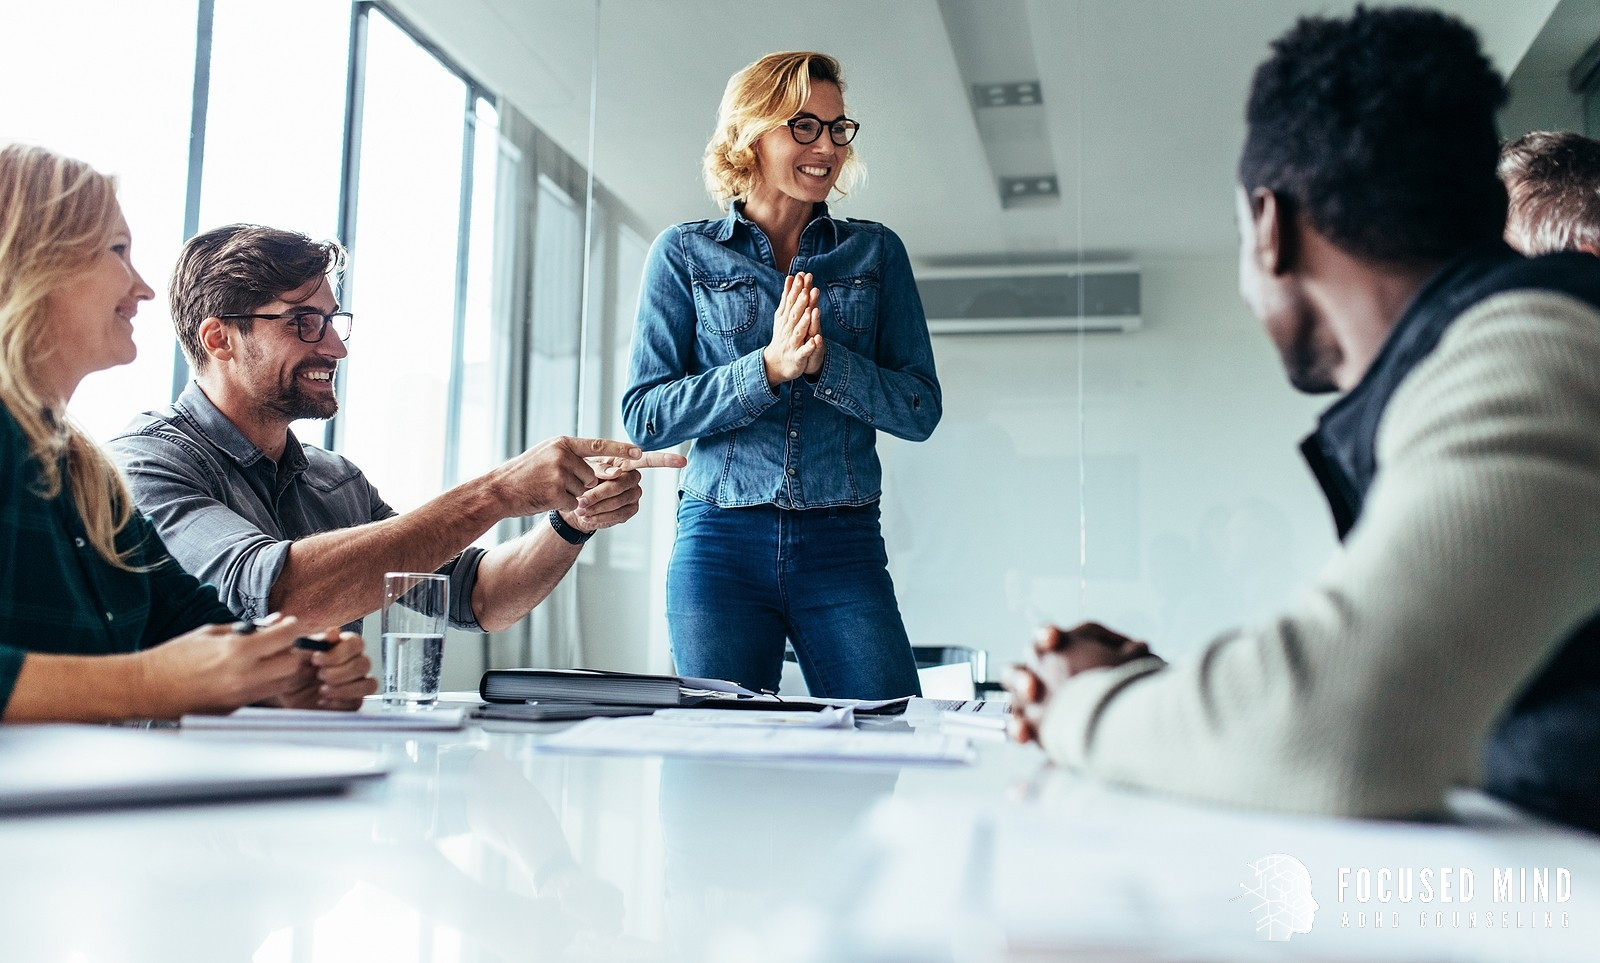 A woman smiles as she address a board room. This could represent ADHD superpowers at work. Contact Focused Mind ADHD Counseling to learn about cognitive behavioral therapy for adult adhd in Columbus, OH and other services.